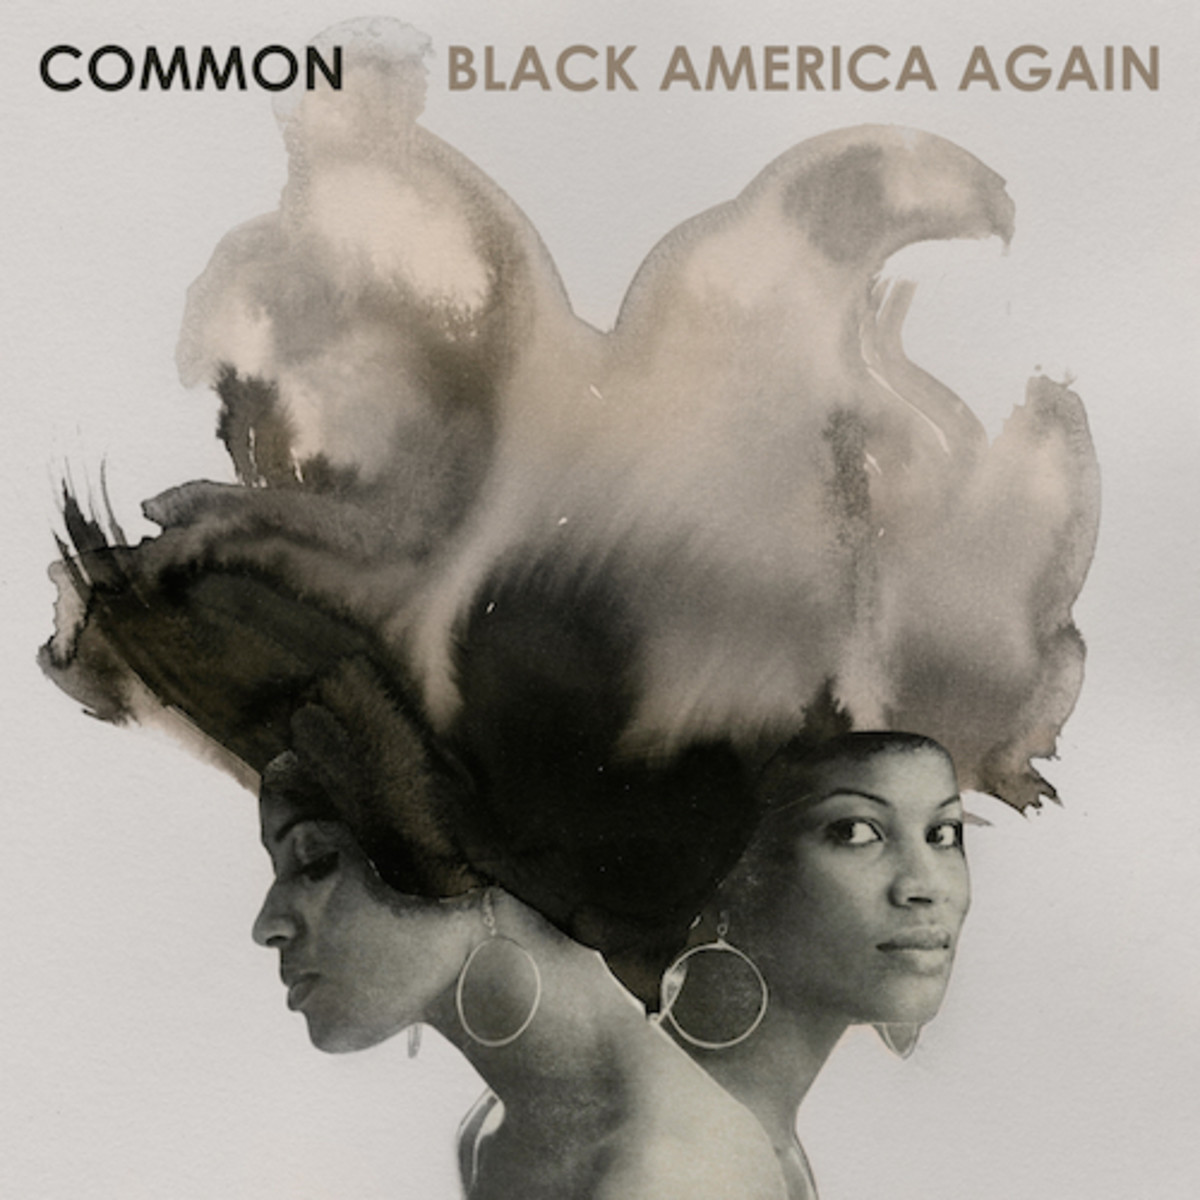 common-black-america-again1.jpg